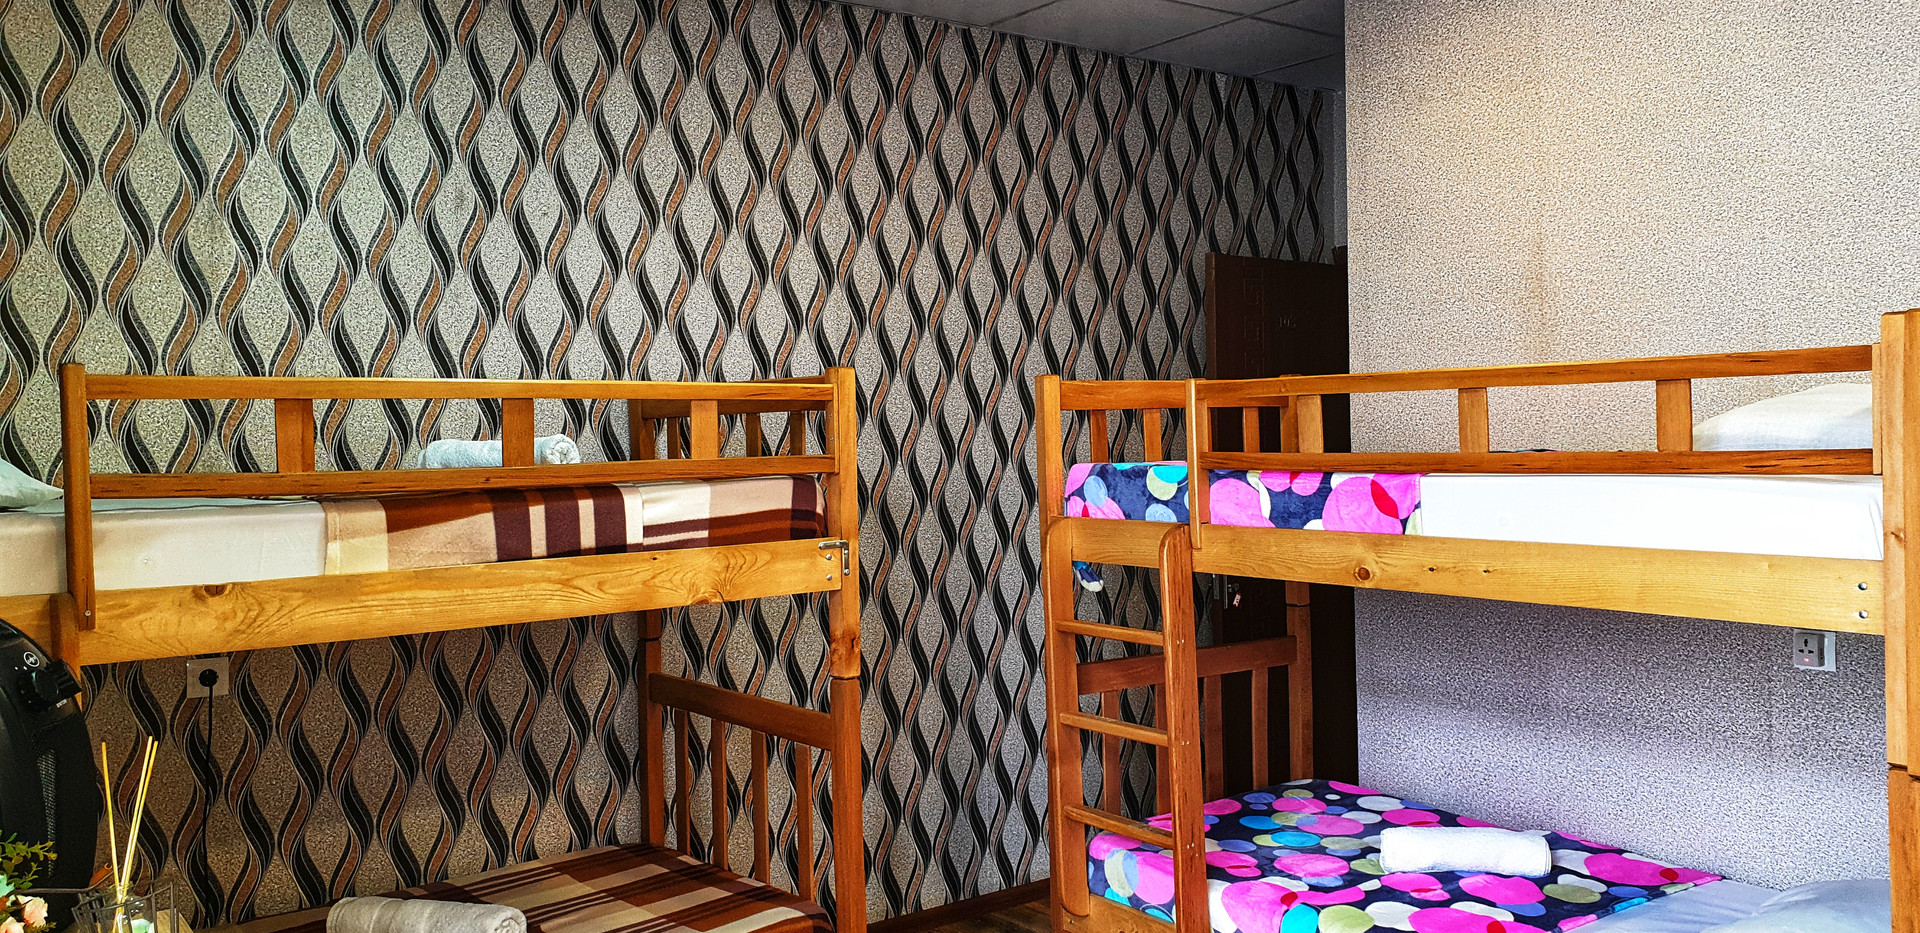 hostel type with bunk beds